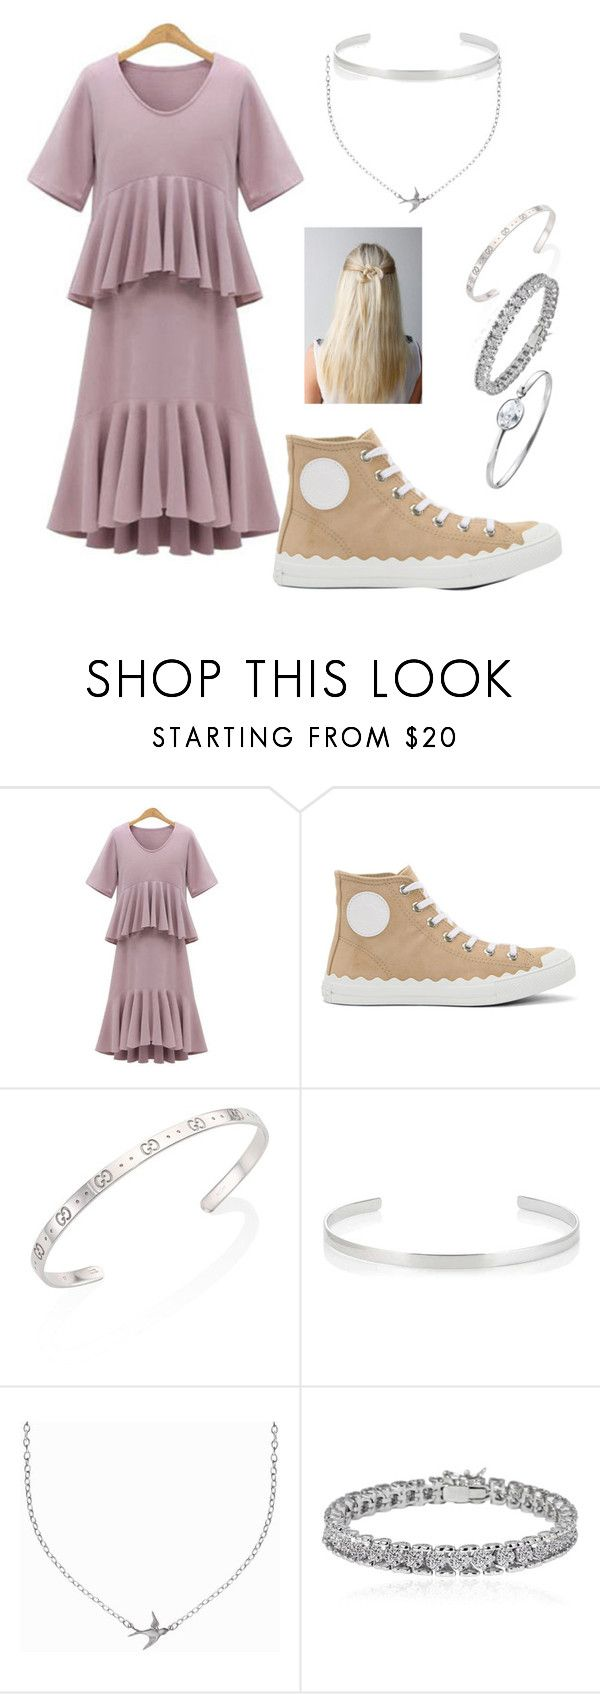 """Understated Boho"" by junoblu ❤ liked on Polyvore featuring Chloé, Gucci, Jennifer Fisher, Minnie Grace, Apples & Figs, Georg Jensen and modern"